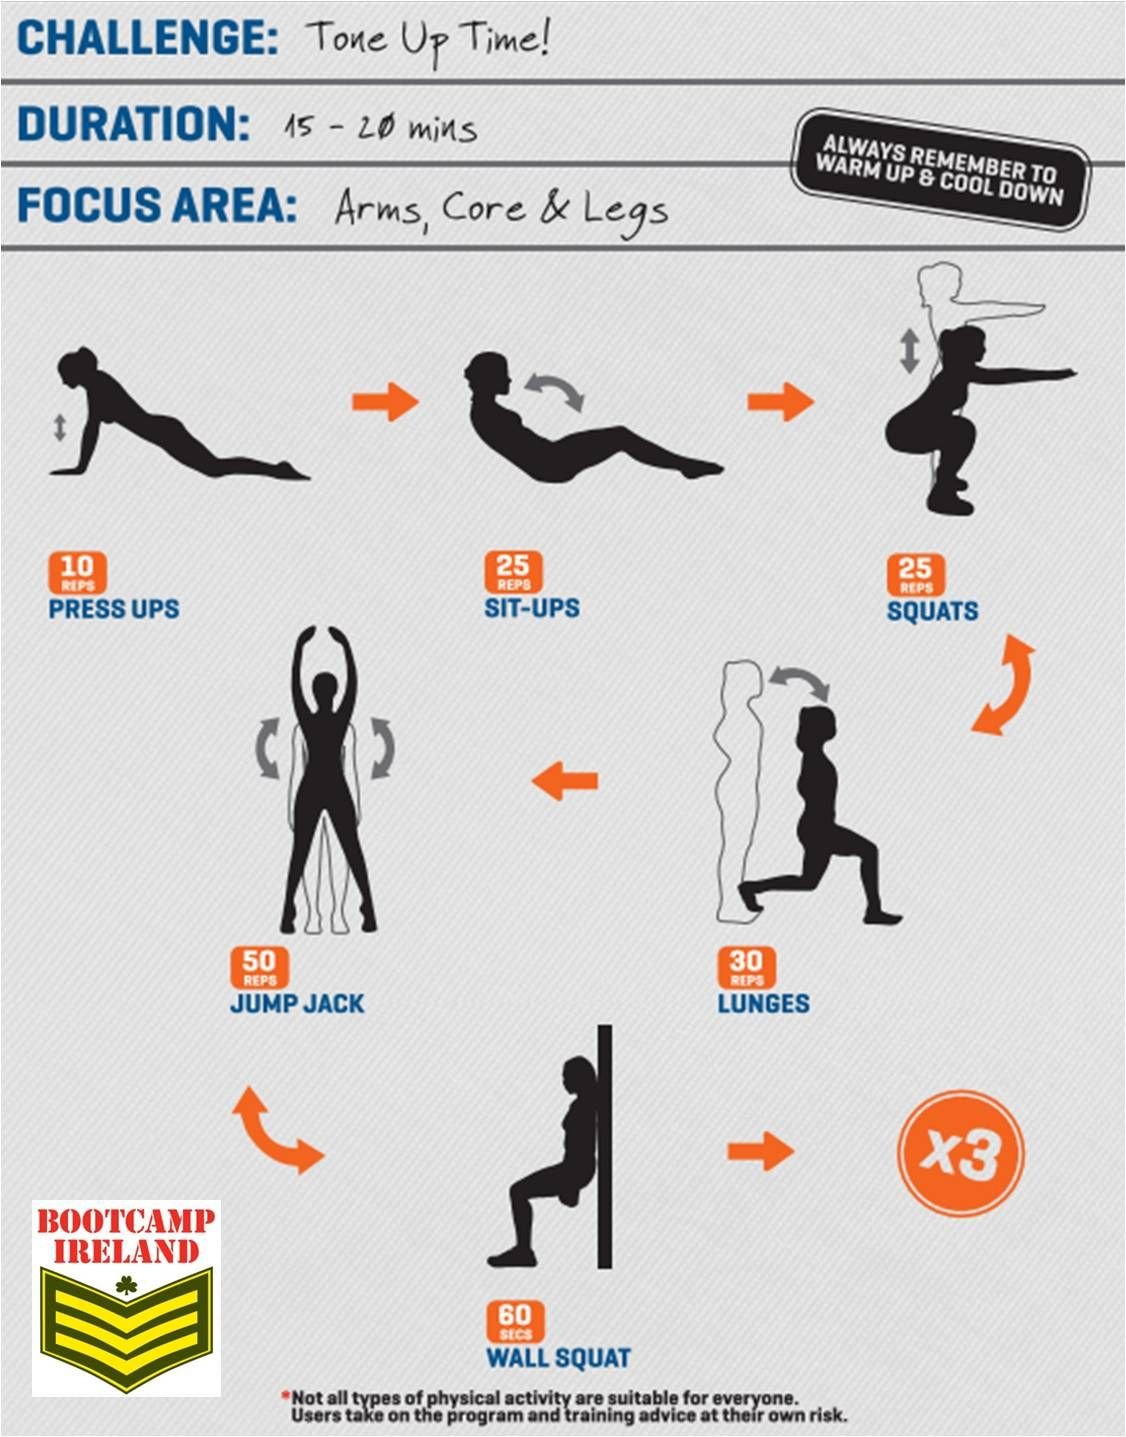 4 bootcamp ireland arms core legs workout fitness